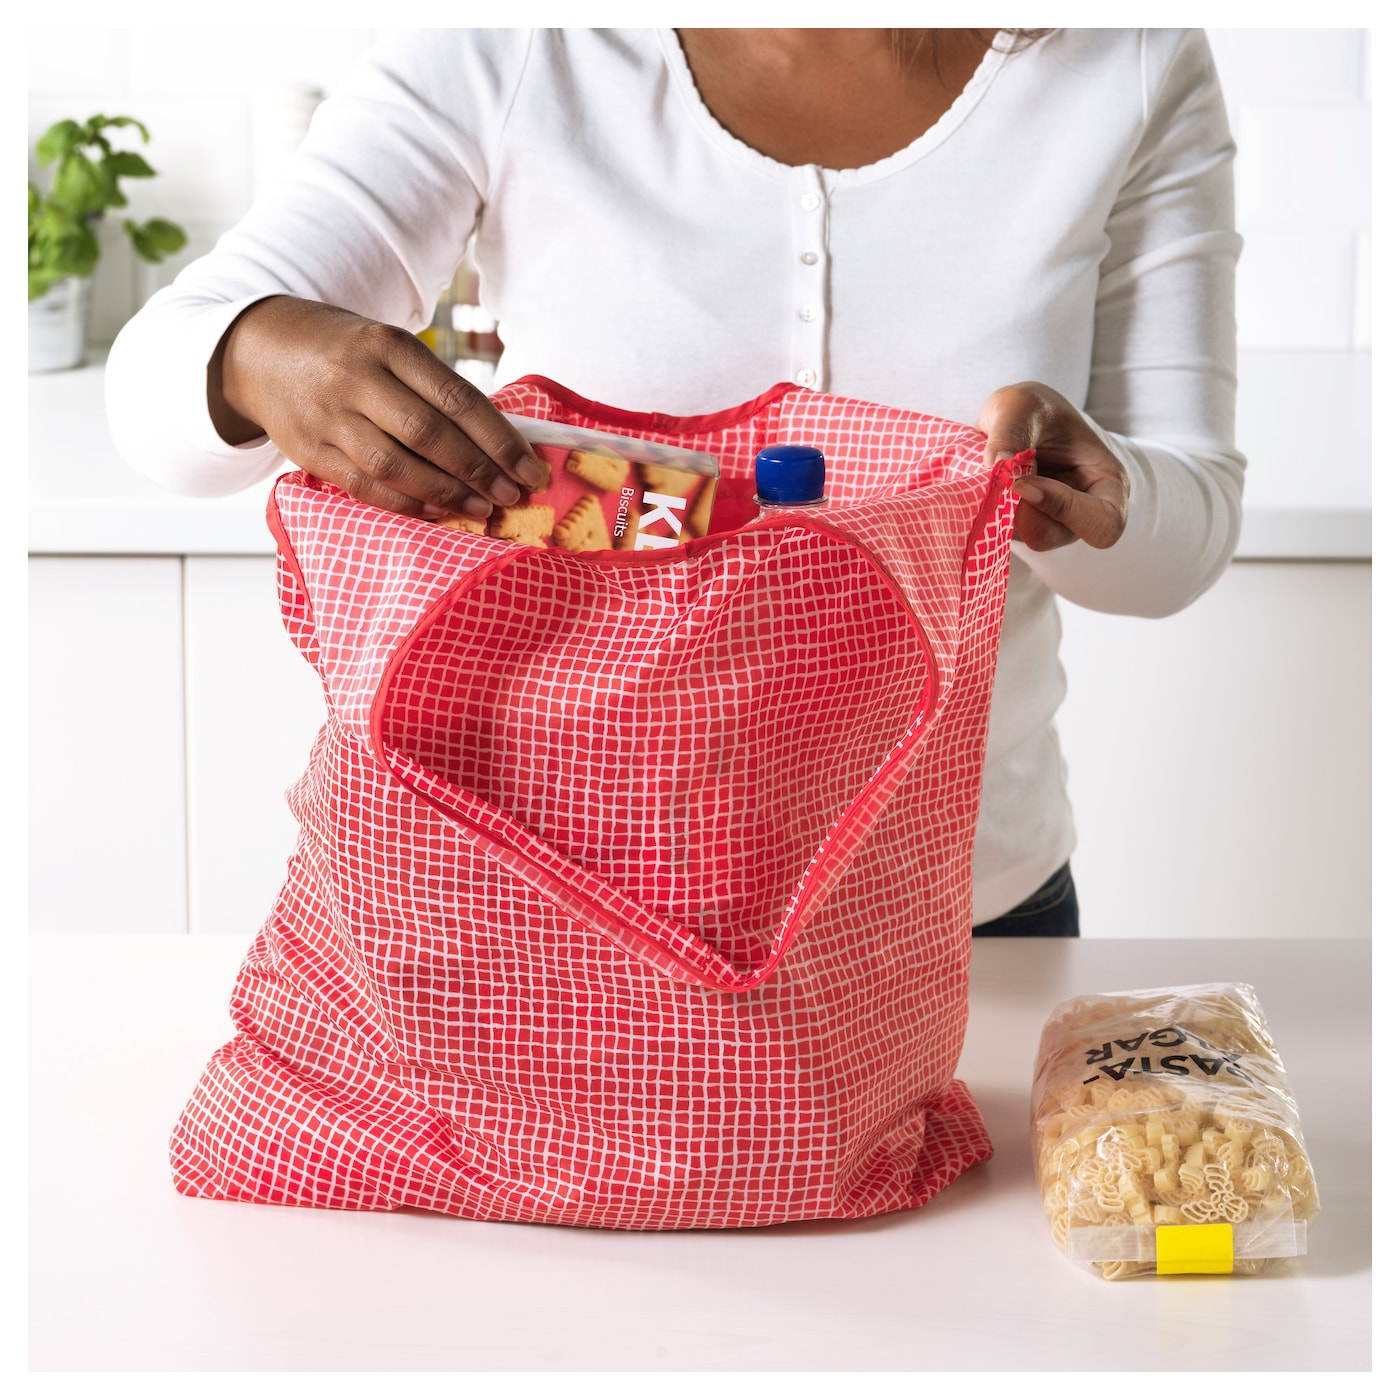 IKEA KNALLA carrier bag Easy to keep clean since you can wash it in the washing machine.